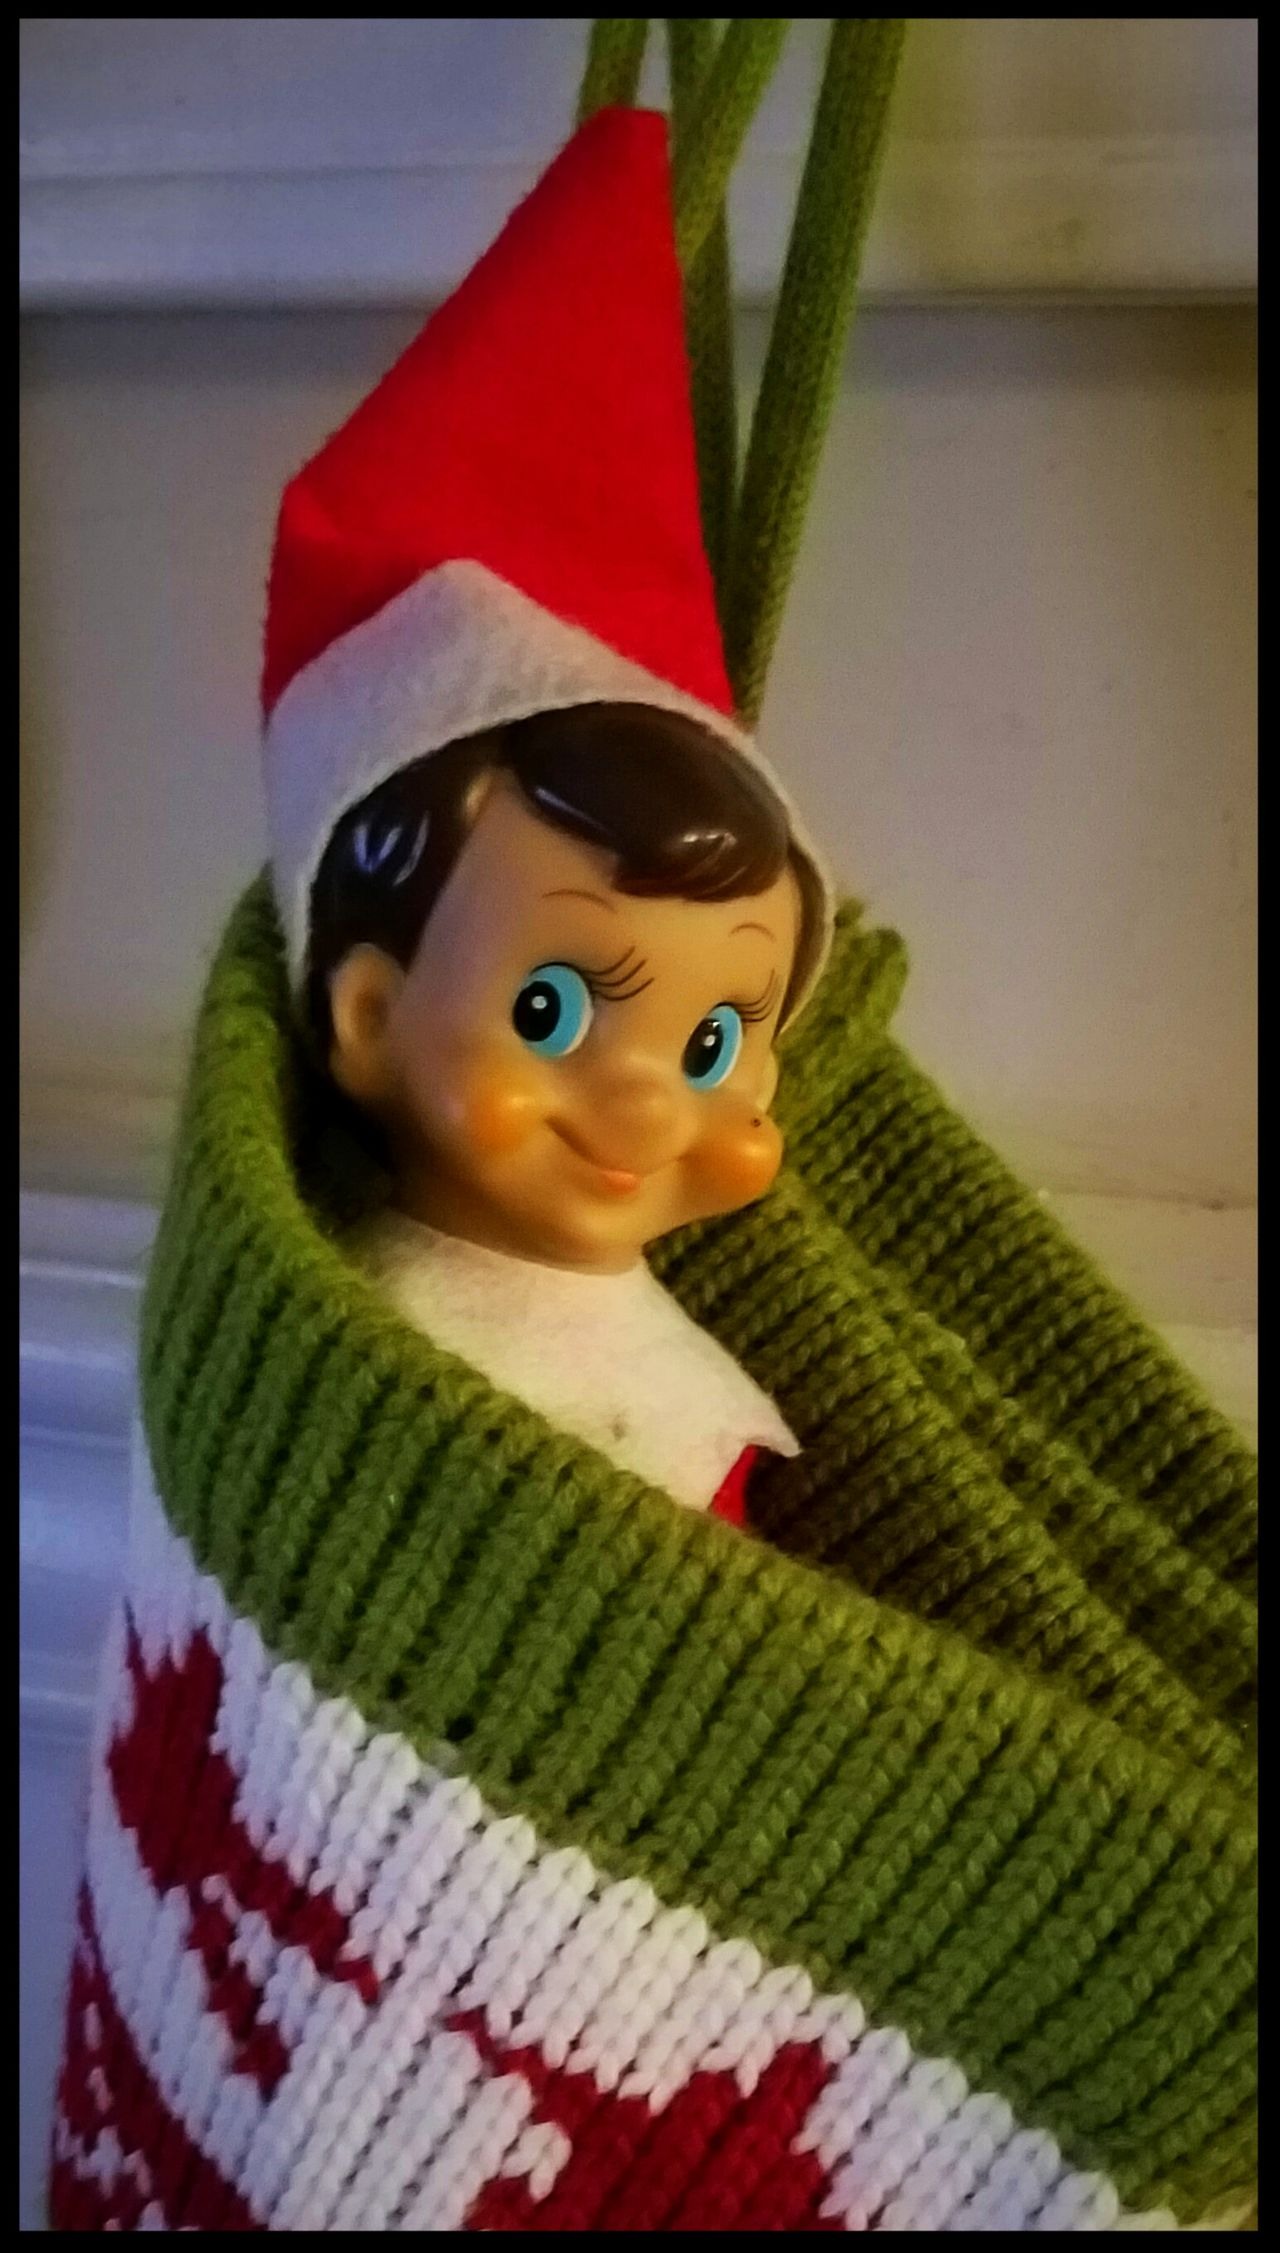 Our Elf, David. Christmas Elfontheshelf Elf Elf On The Shelf David Tradition Holidays Sneaky Christmas Around The World Christmastime Christmas2016 Christmas2016 Red